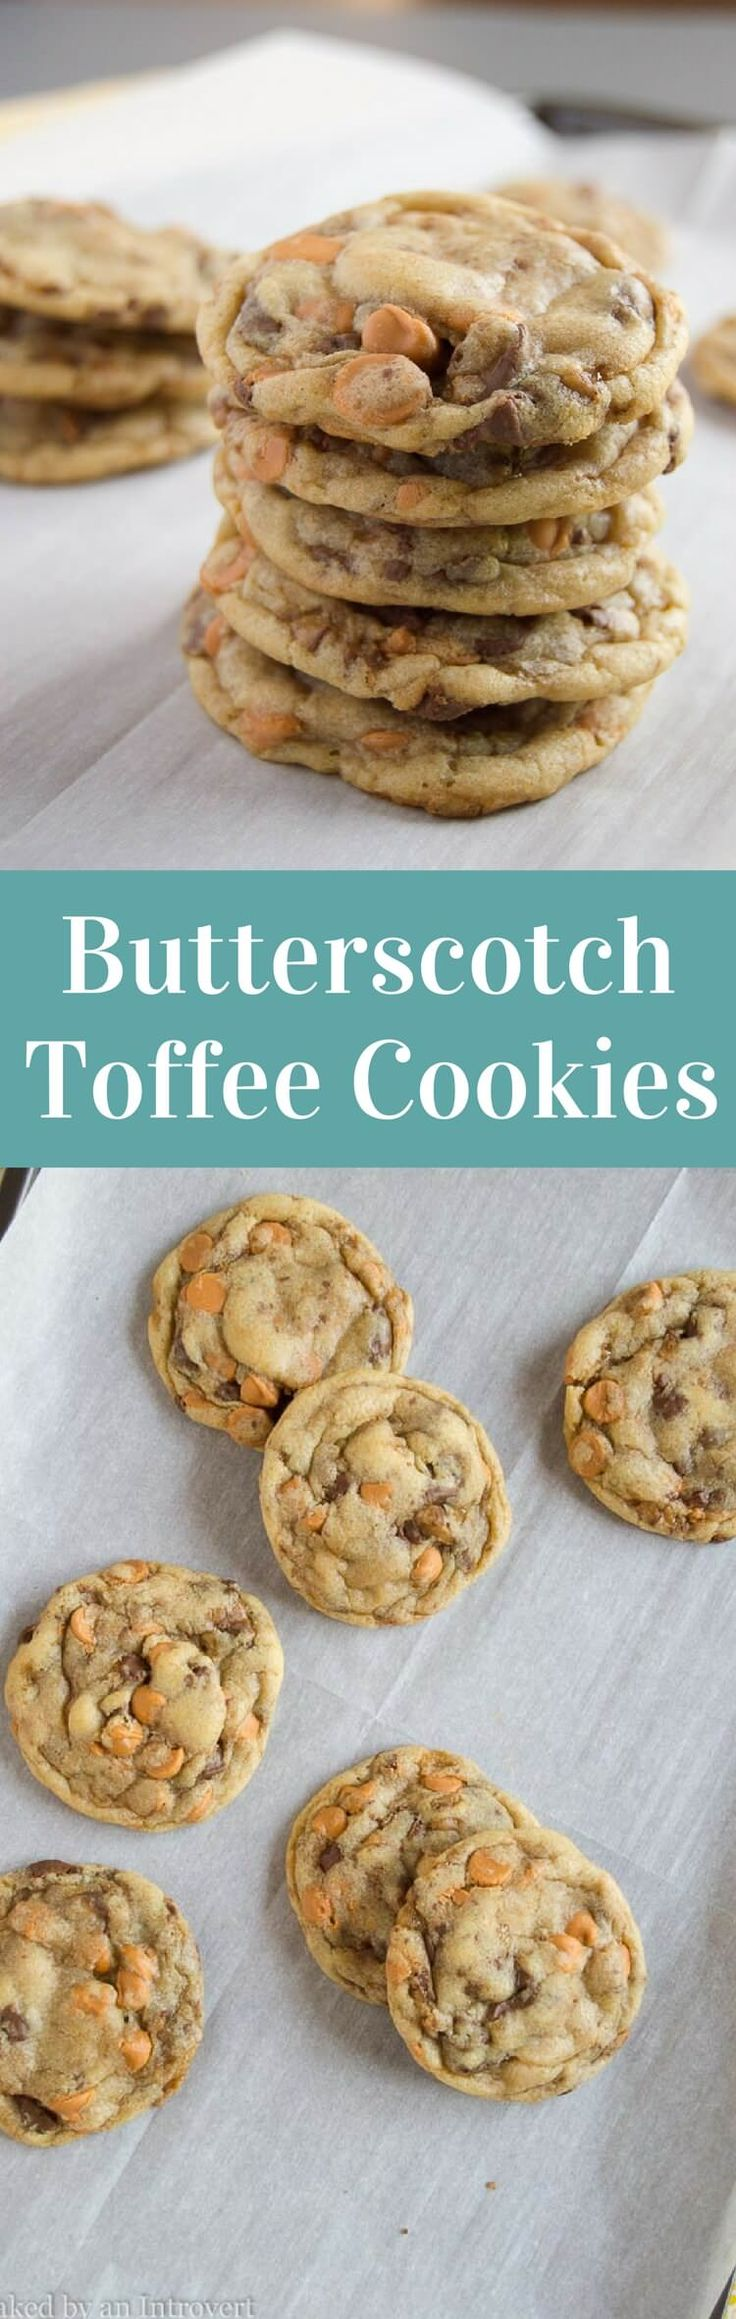 This easy Butterscotch Toffee Cookies recipe may be the best cookies you've ever tasted. They are simple enough to whip up anytime. via @introvertbaker